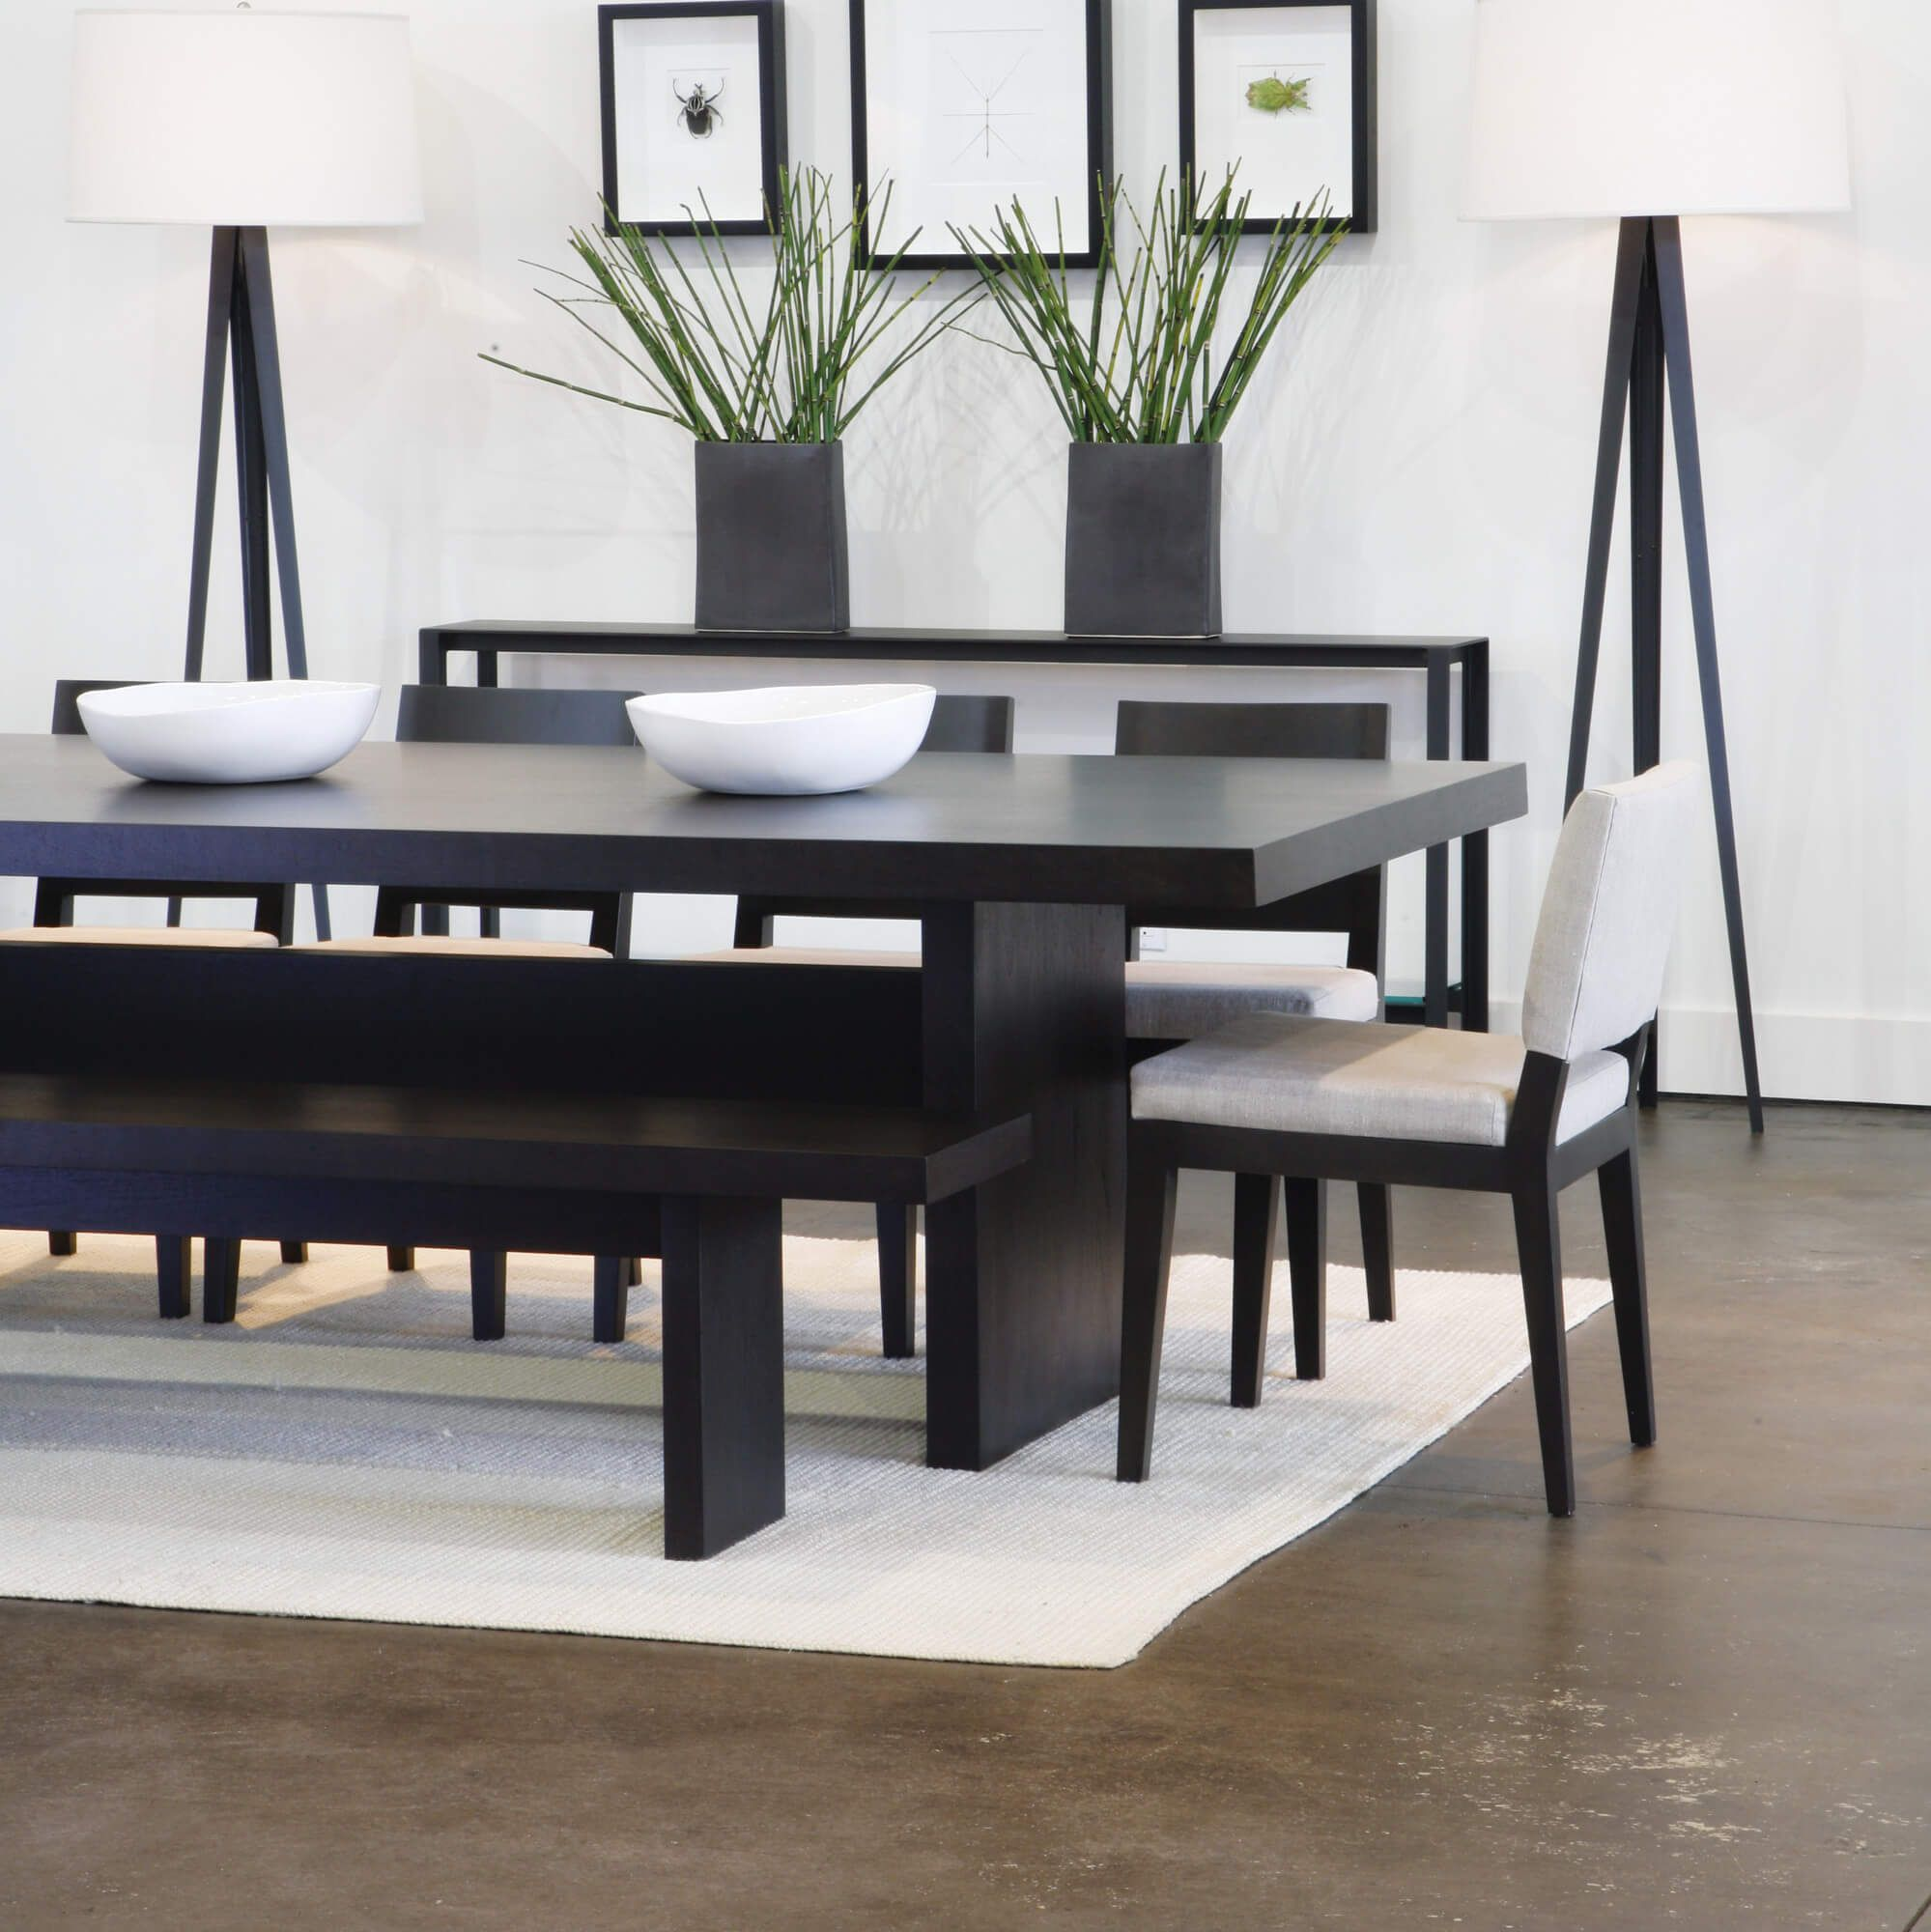 5 piece modern dining room set with bench. This is a great dining ...